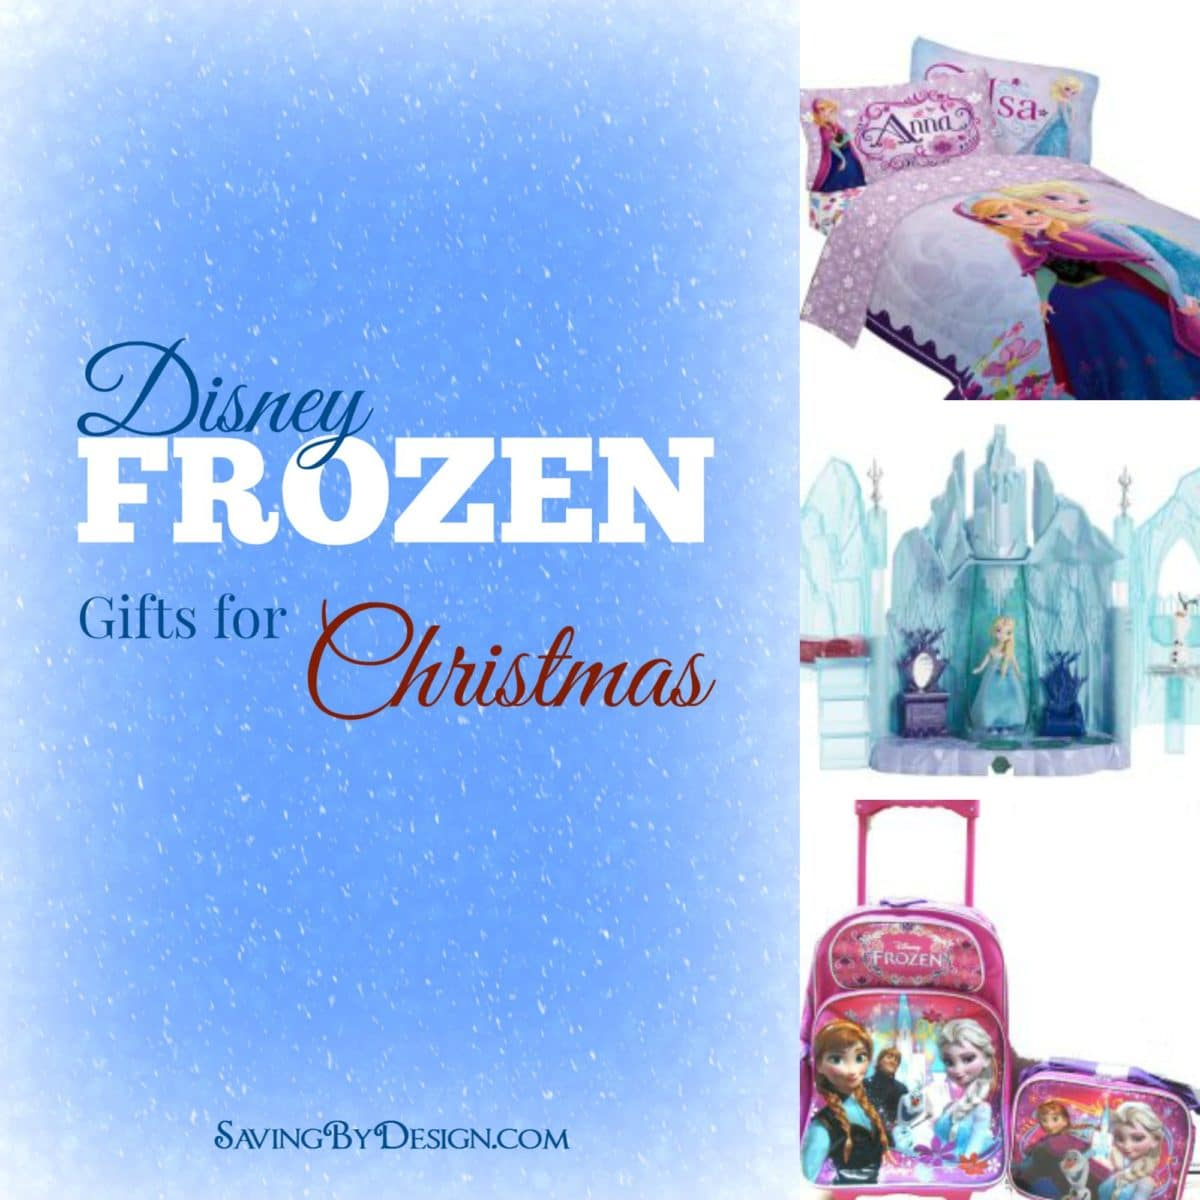 31 awesome Frozen-themed gifts We've rounded up the latest and greatest Frozen-themed gifts and toys to please the most enthusiastic Anna and Elsa lovers.